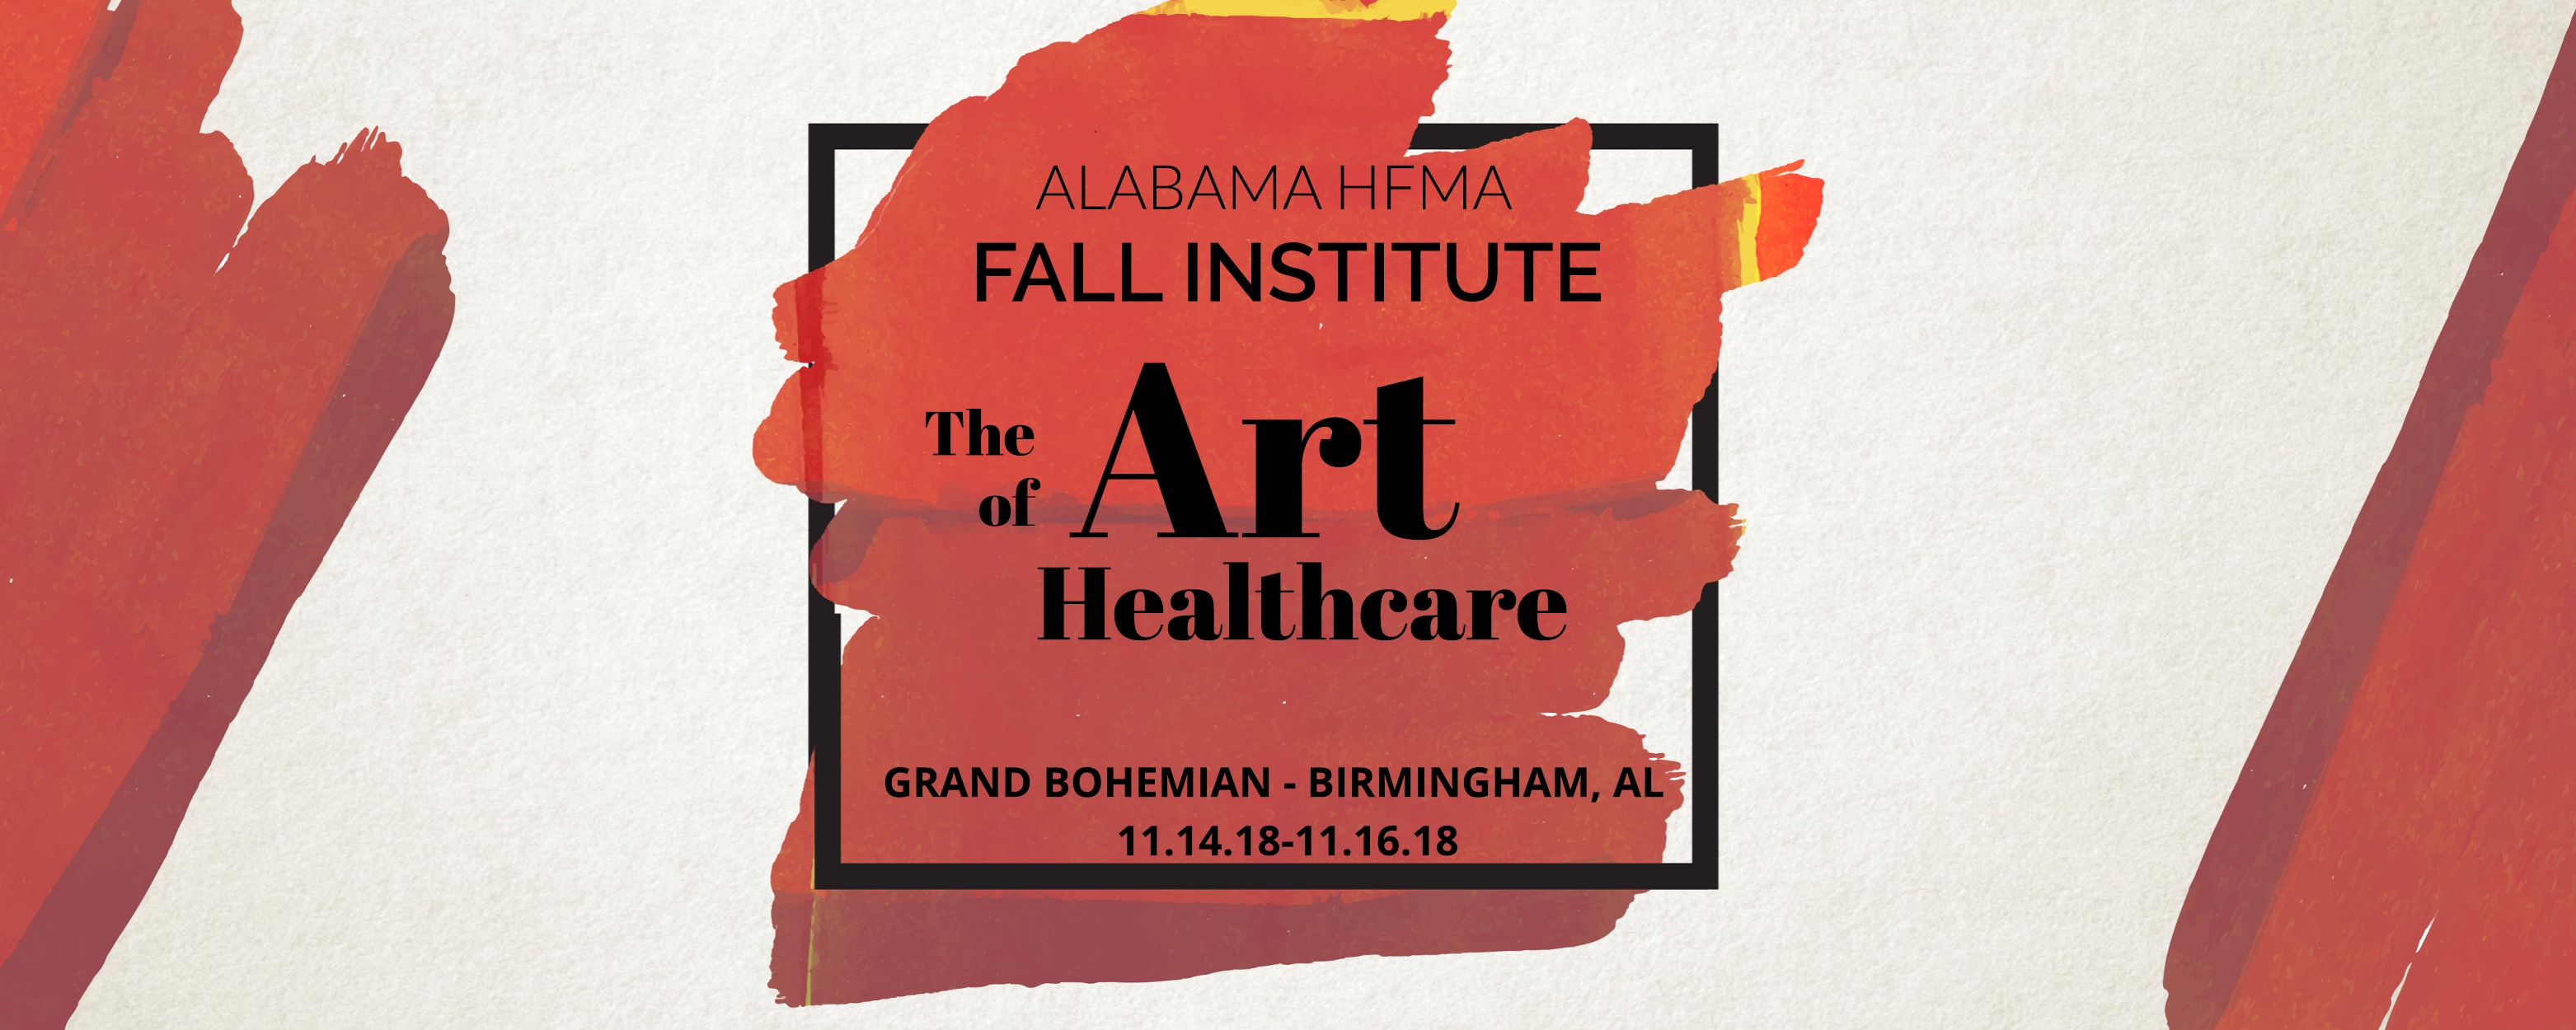 Alabama HFMA Fall Institute: The Art of Healthcare